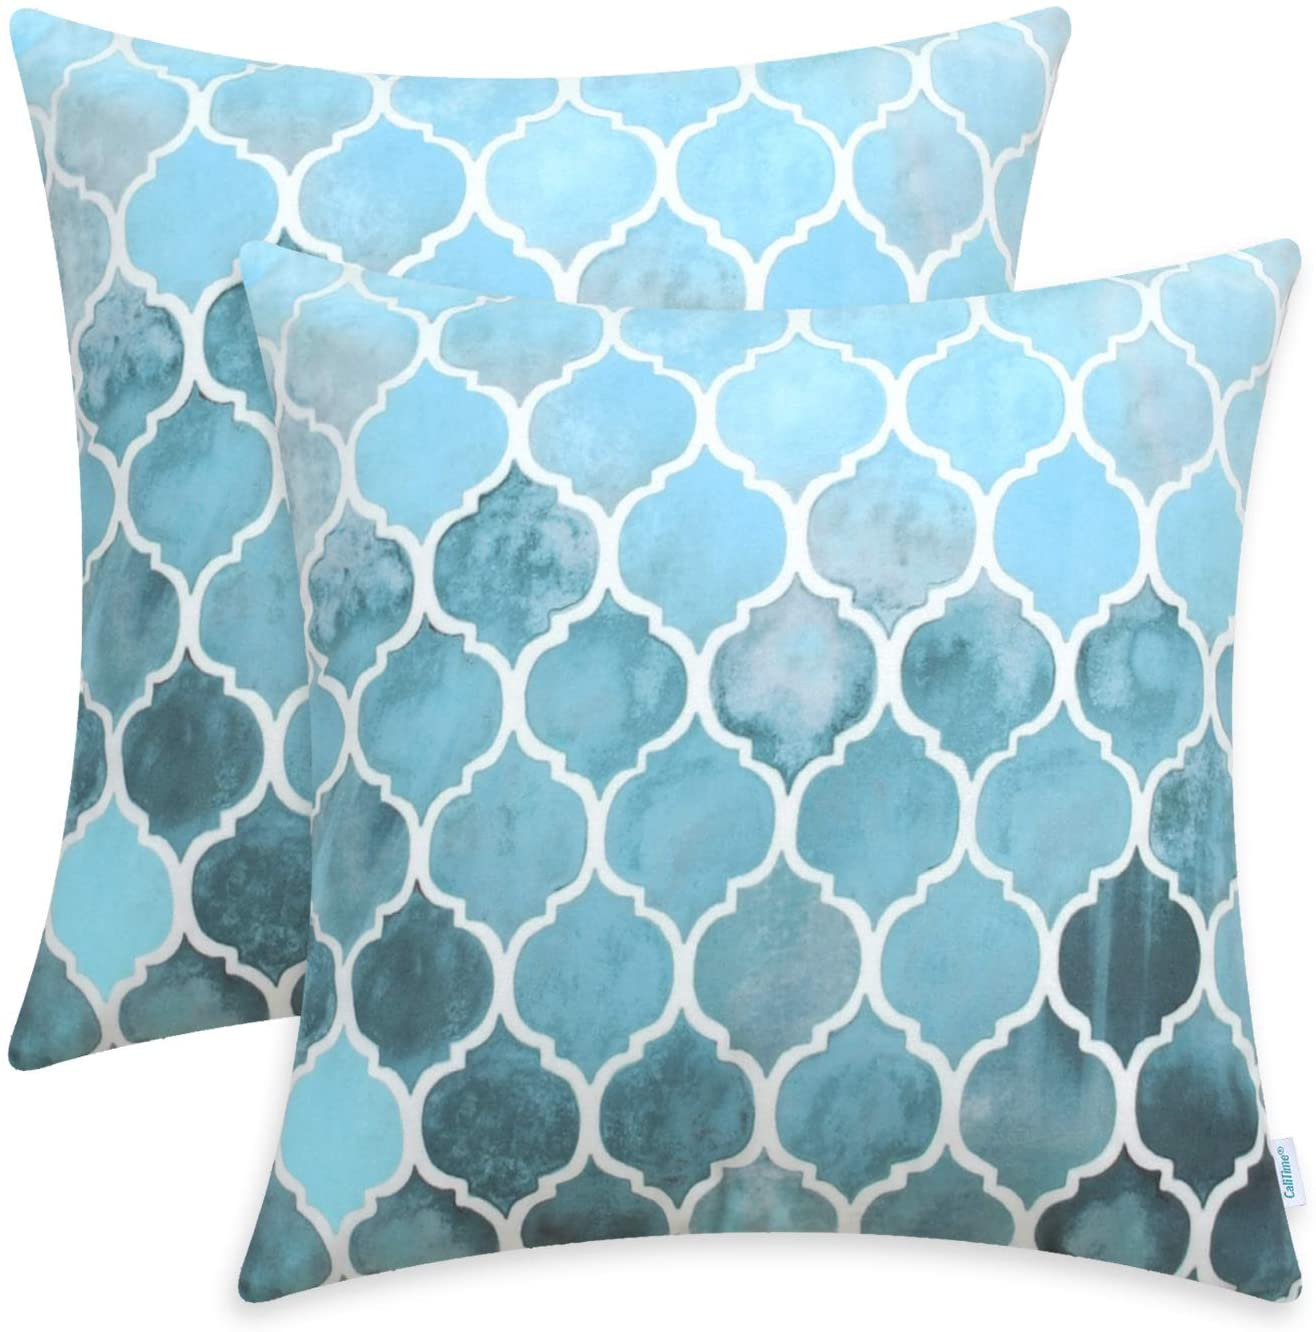 CaliTime Pack of 2 Cozy Throw Pillow Cases Covers for Couch Bed Sofa Farmhouse Manual Hand Painted Colorful Geometric Trellis Chain Print 22 X 22 Inches Main Sky Blue & Smoke Blue